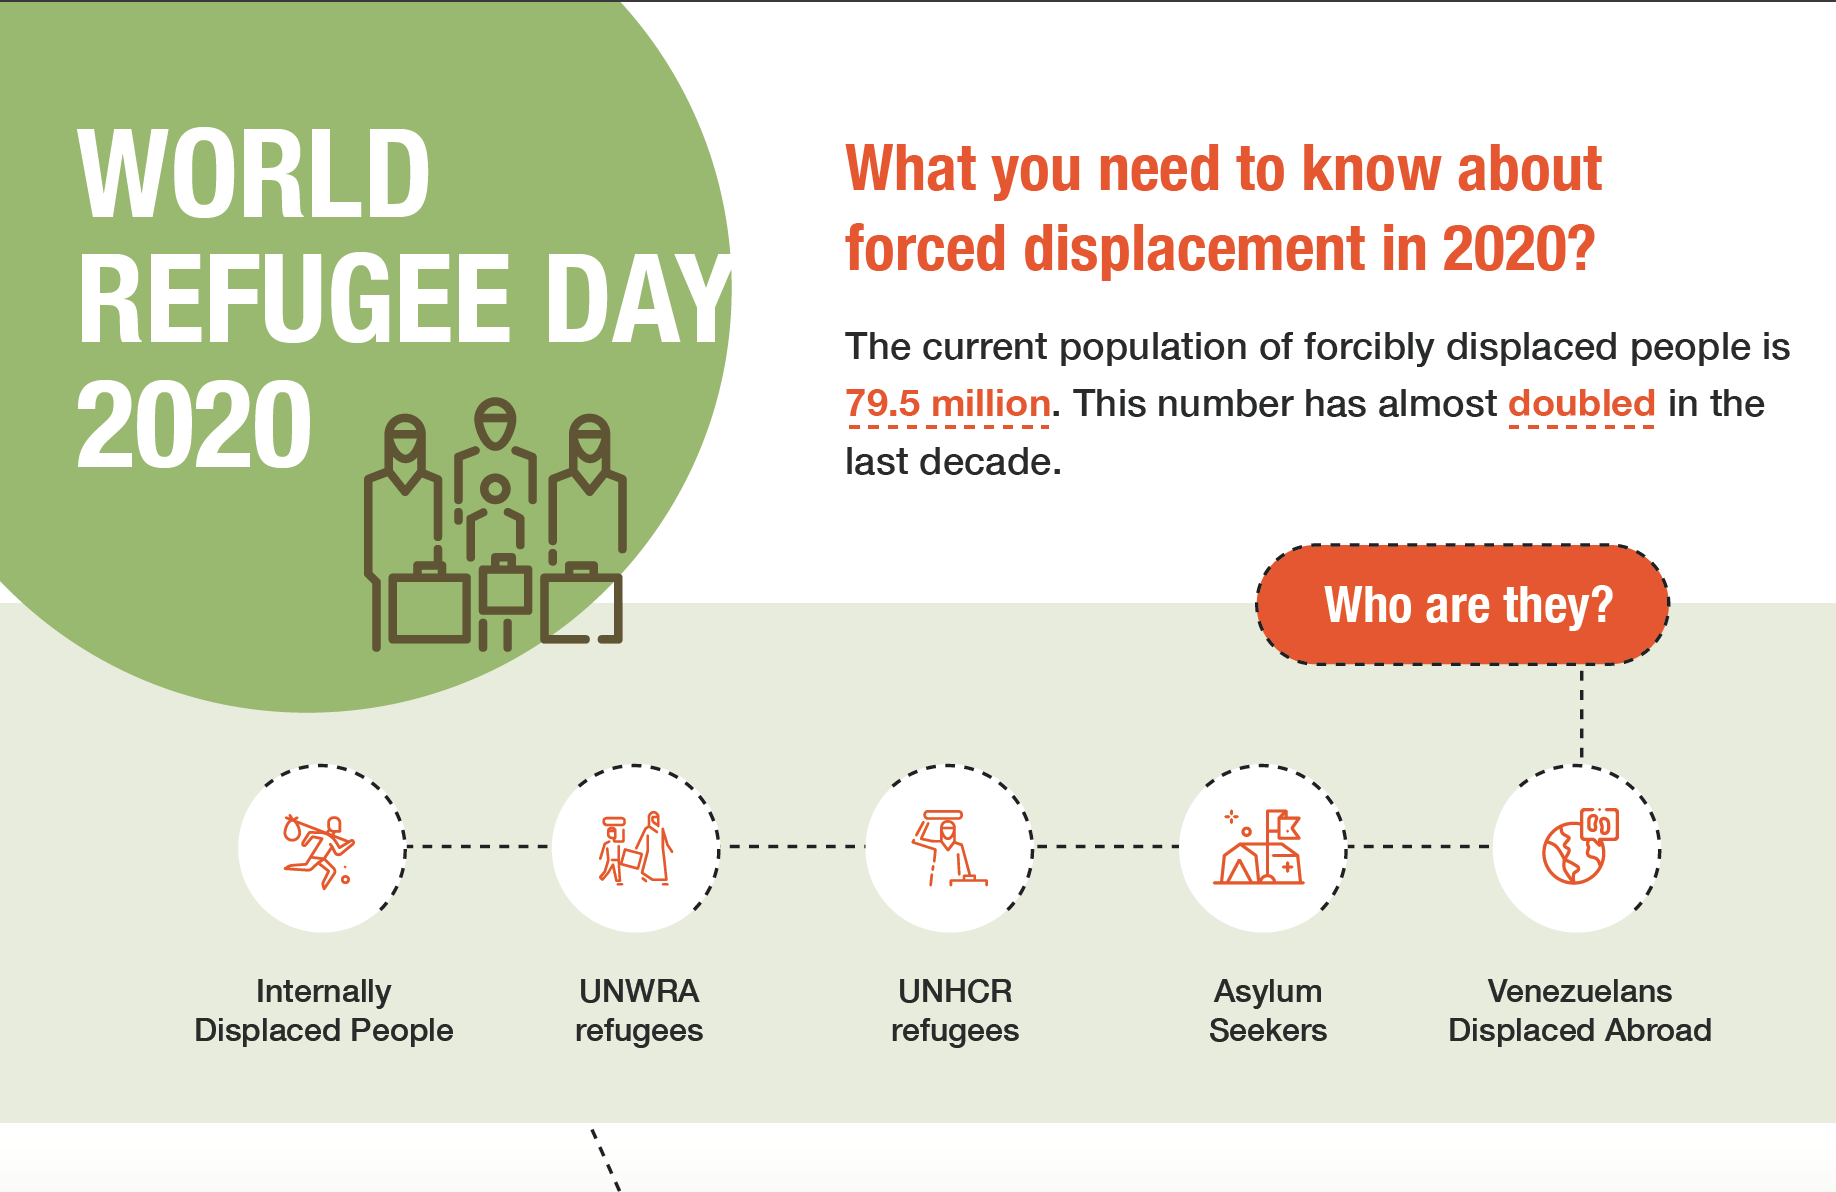 World Refugee Day 2020 Infographic: What you need to know about forced displacement